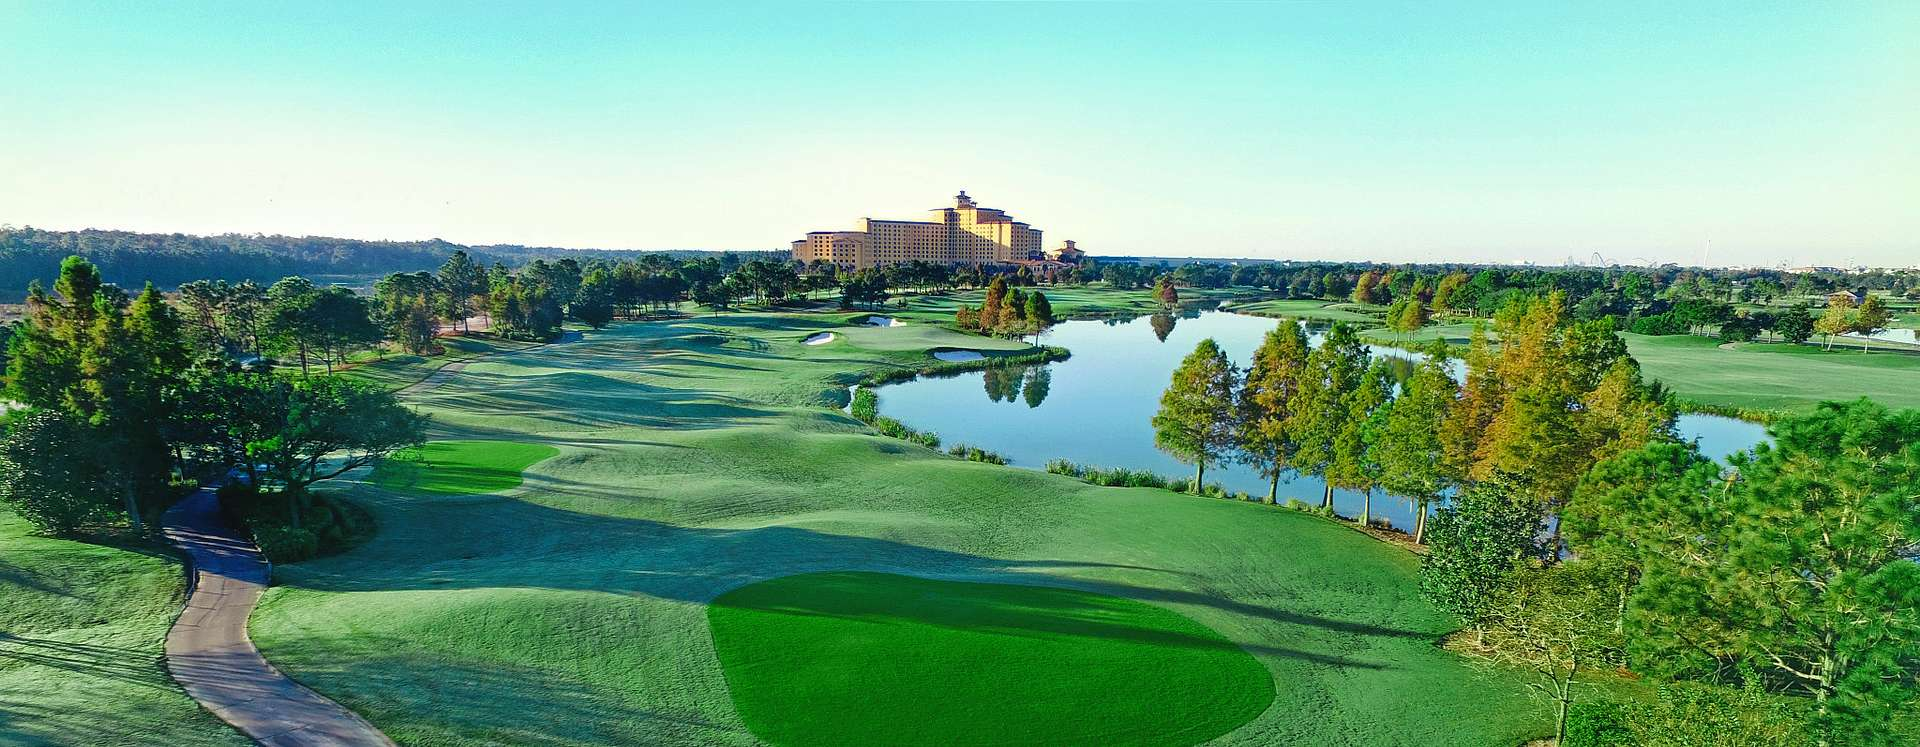 Overview of the golf course and resort at Shingle Creek Golf Club in Orlando